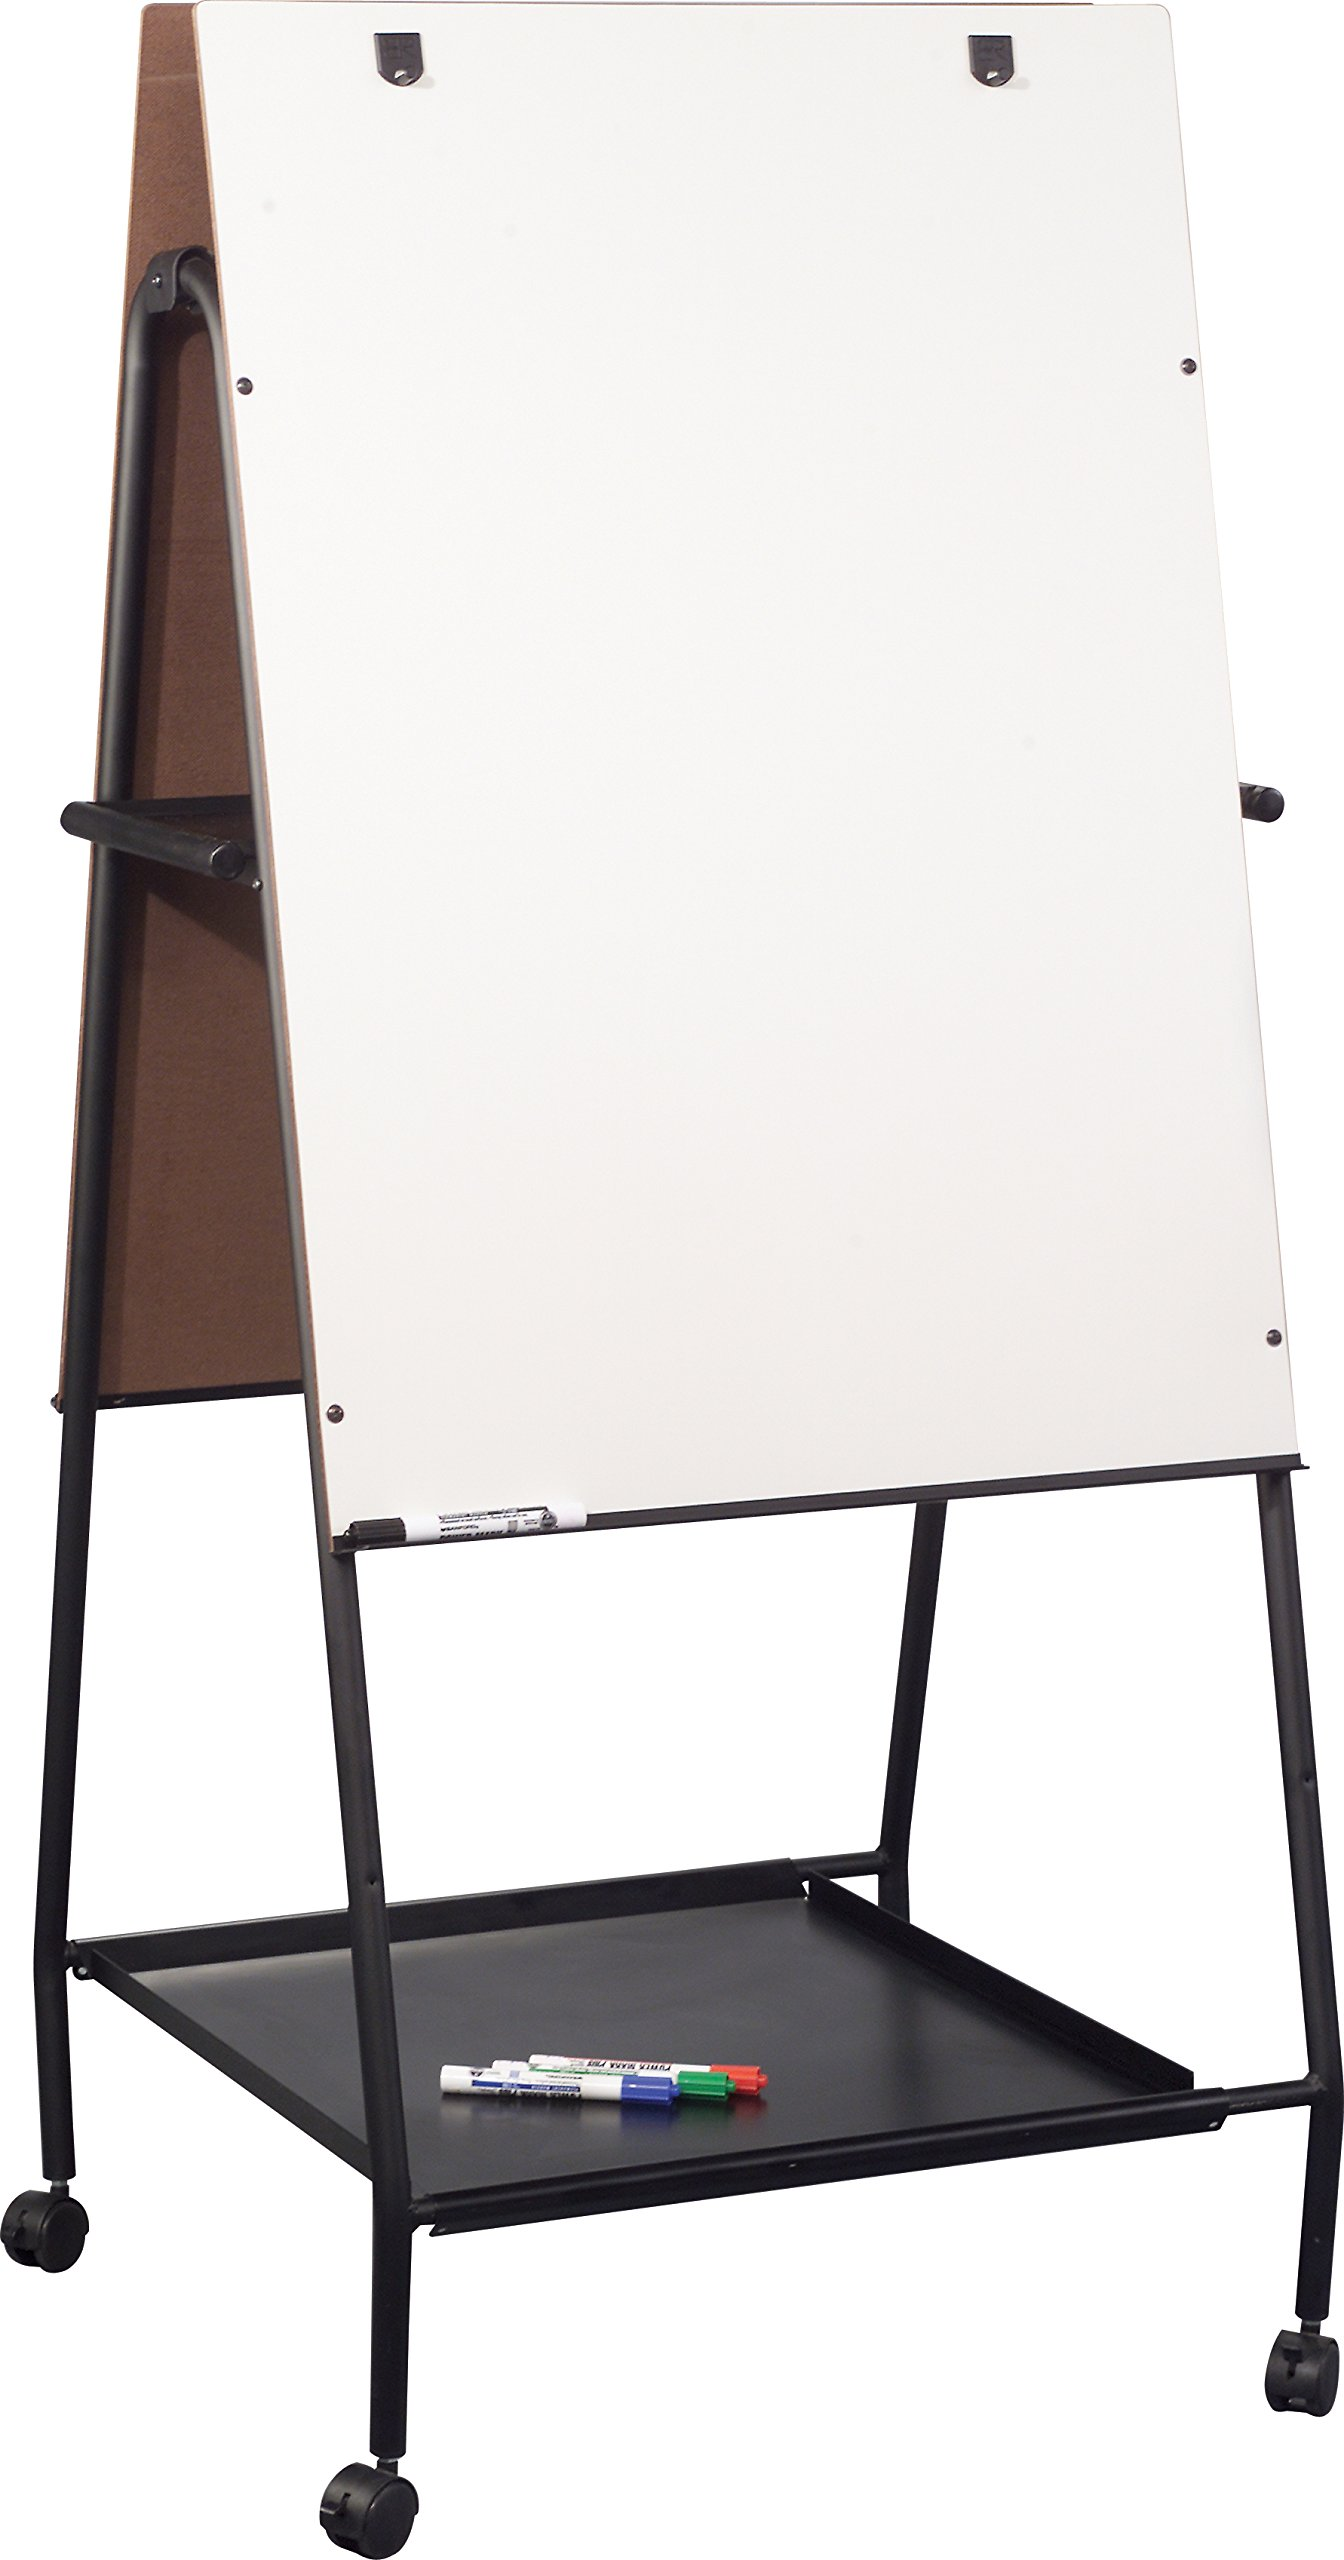 Best-Rite Mobile Folding Wheasel with Tray, Double Sided Whiteboard Easel (778OT)